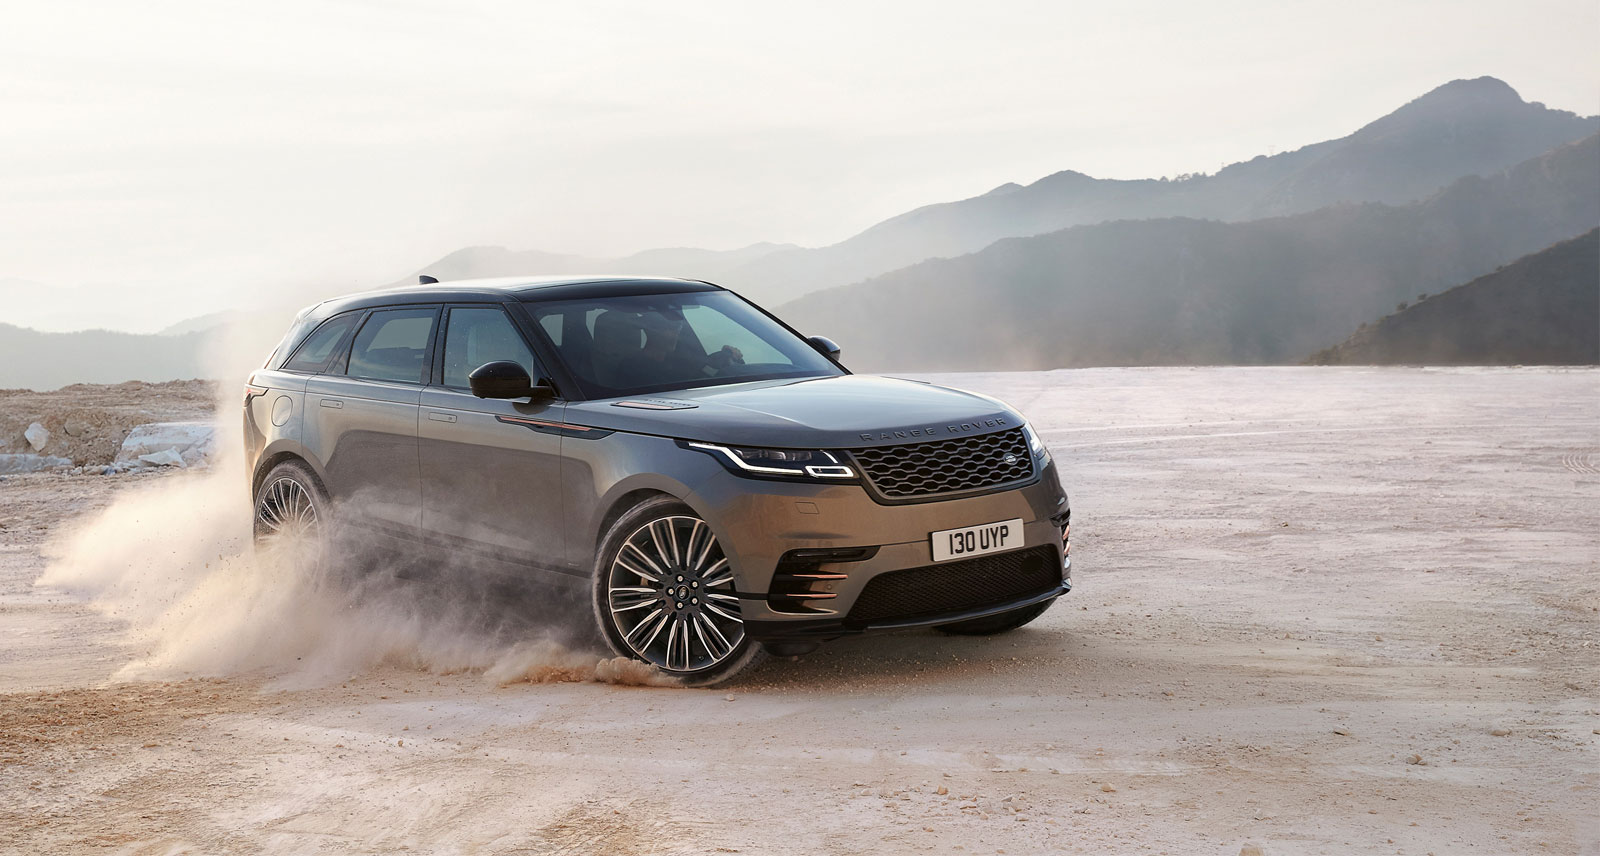 Range Rover Just Unveiled a Sleek, Powerful New SUV